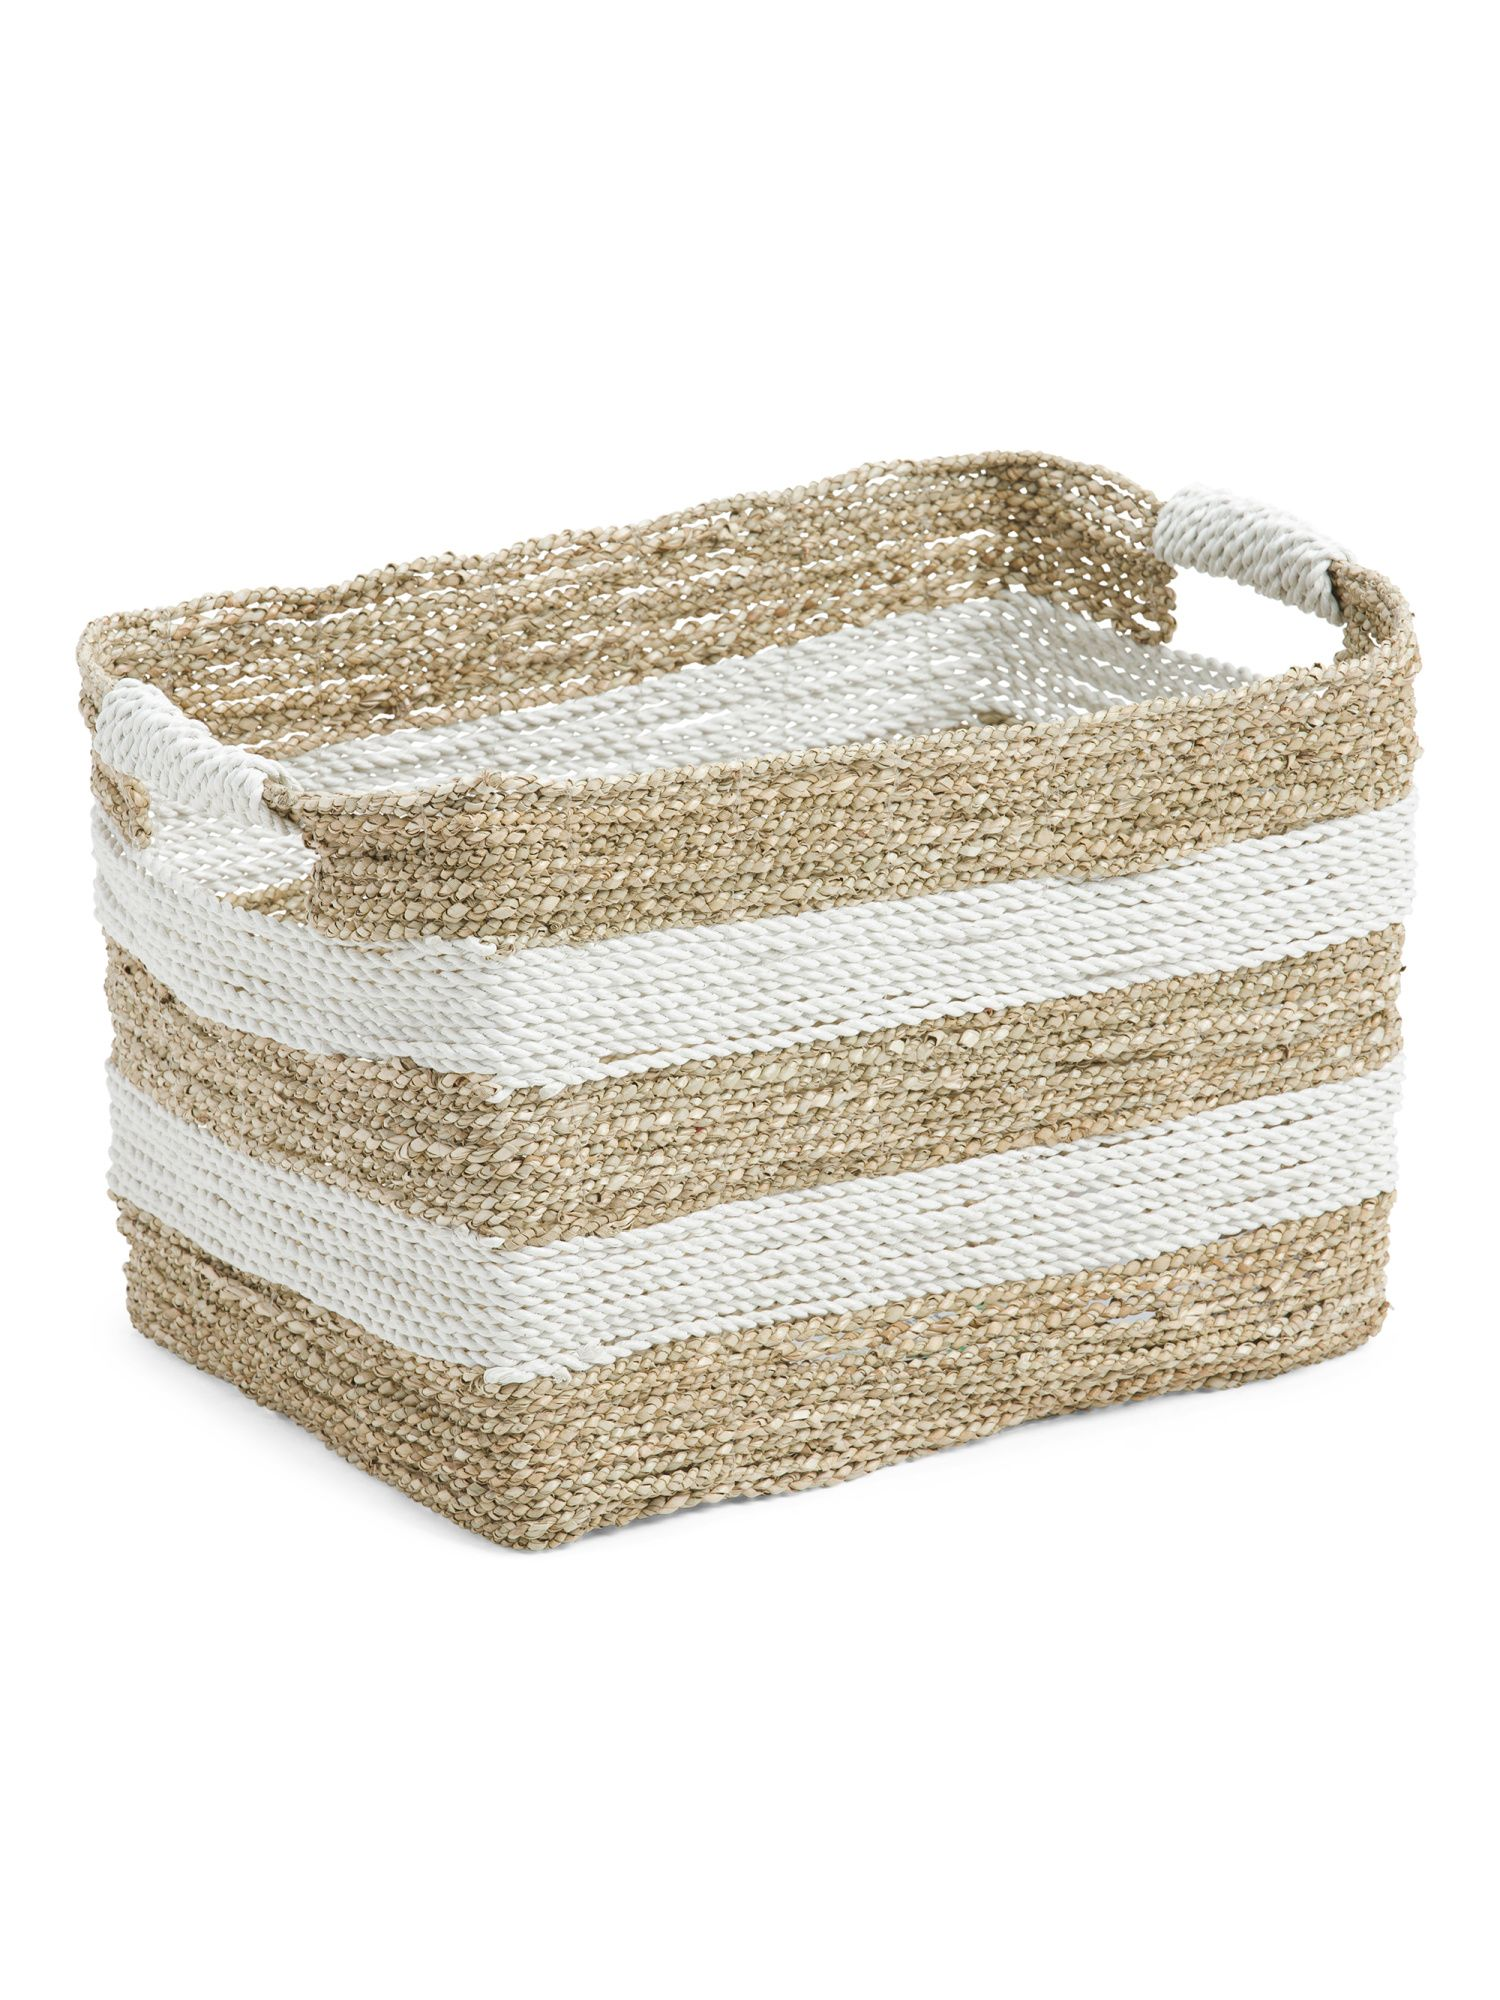 Raffia Seagrass Natural Storage Basket Storage Organization